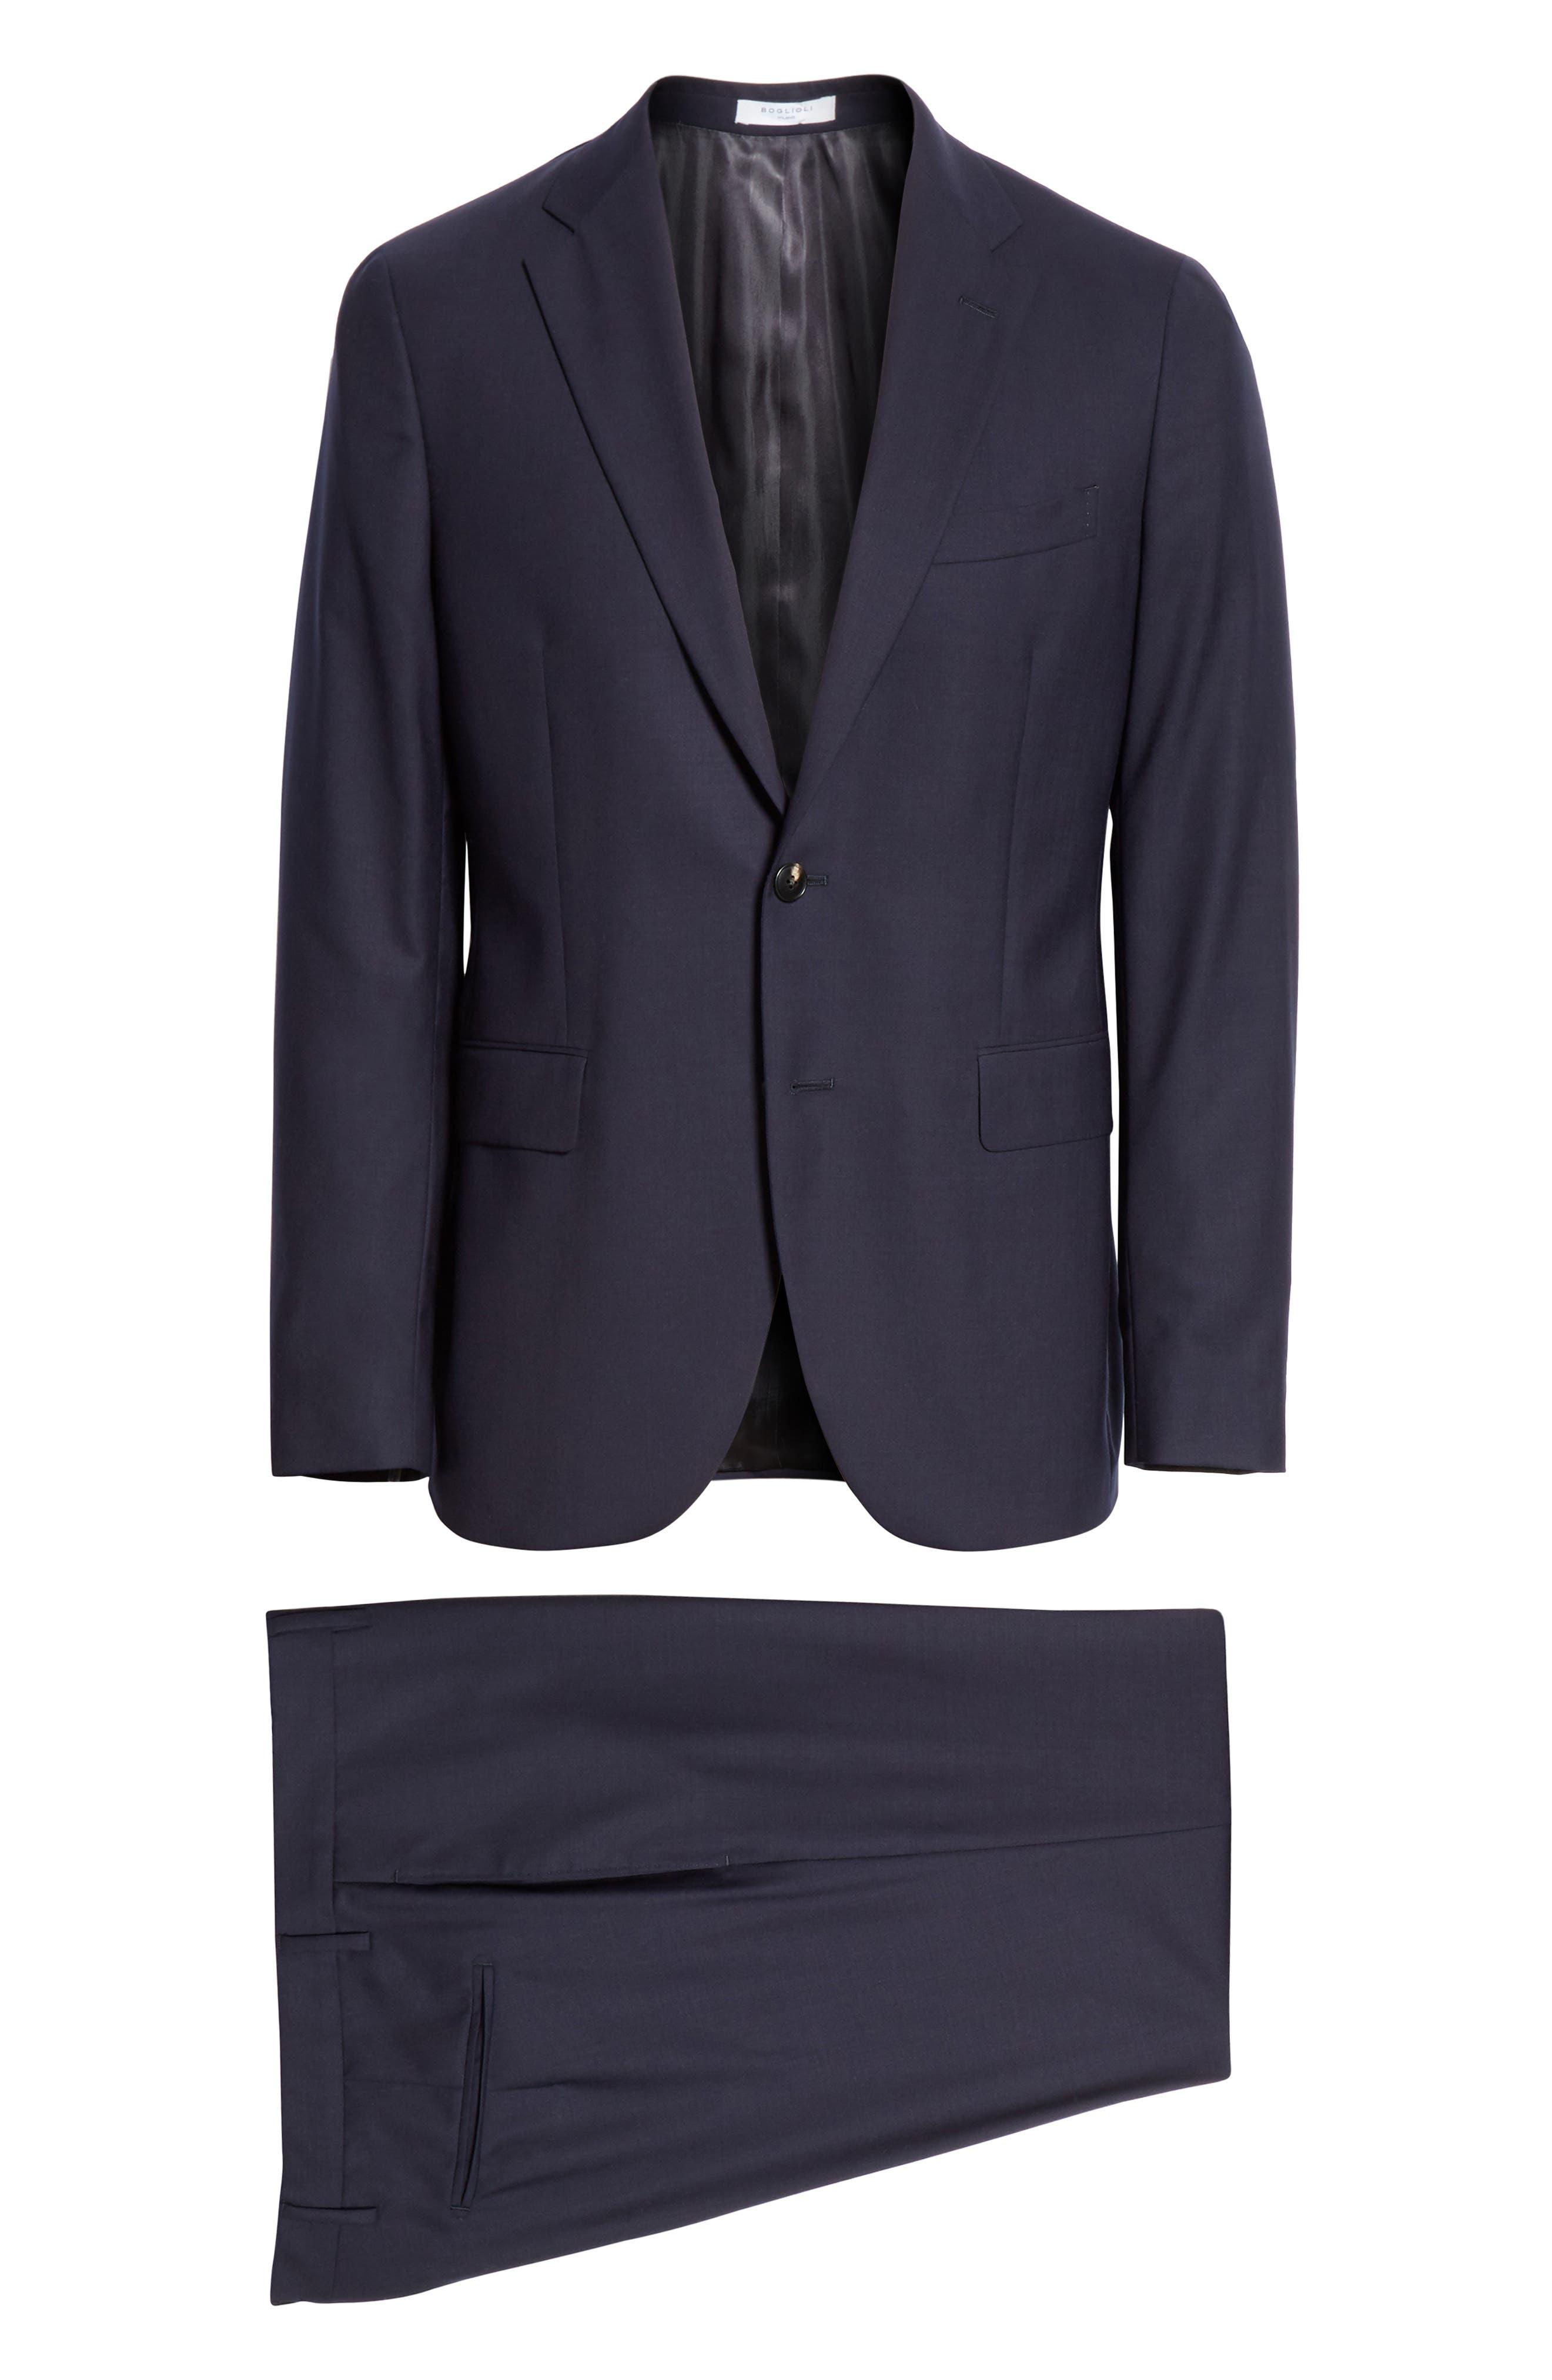 Milano Trim Fit Solid Wool Suit,                             Alternate thumbnail 8, color,                             NAVY